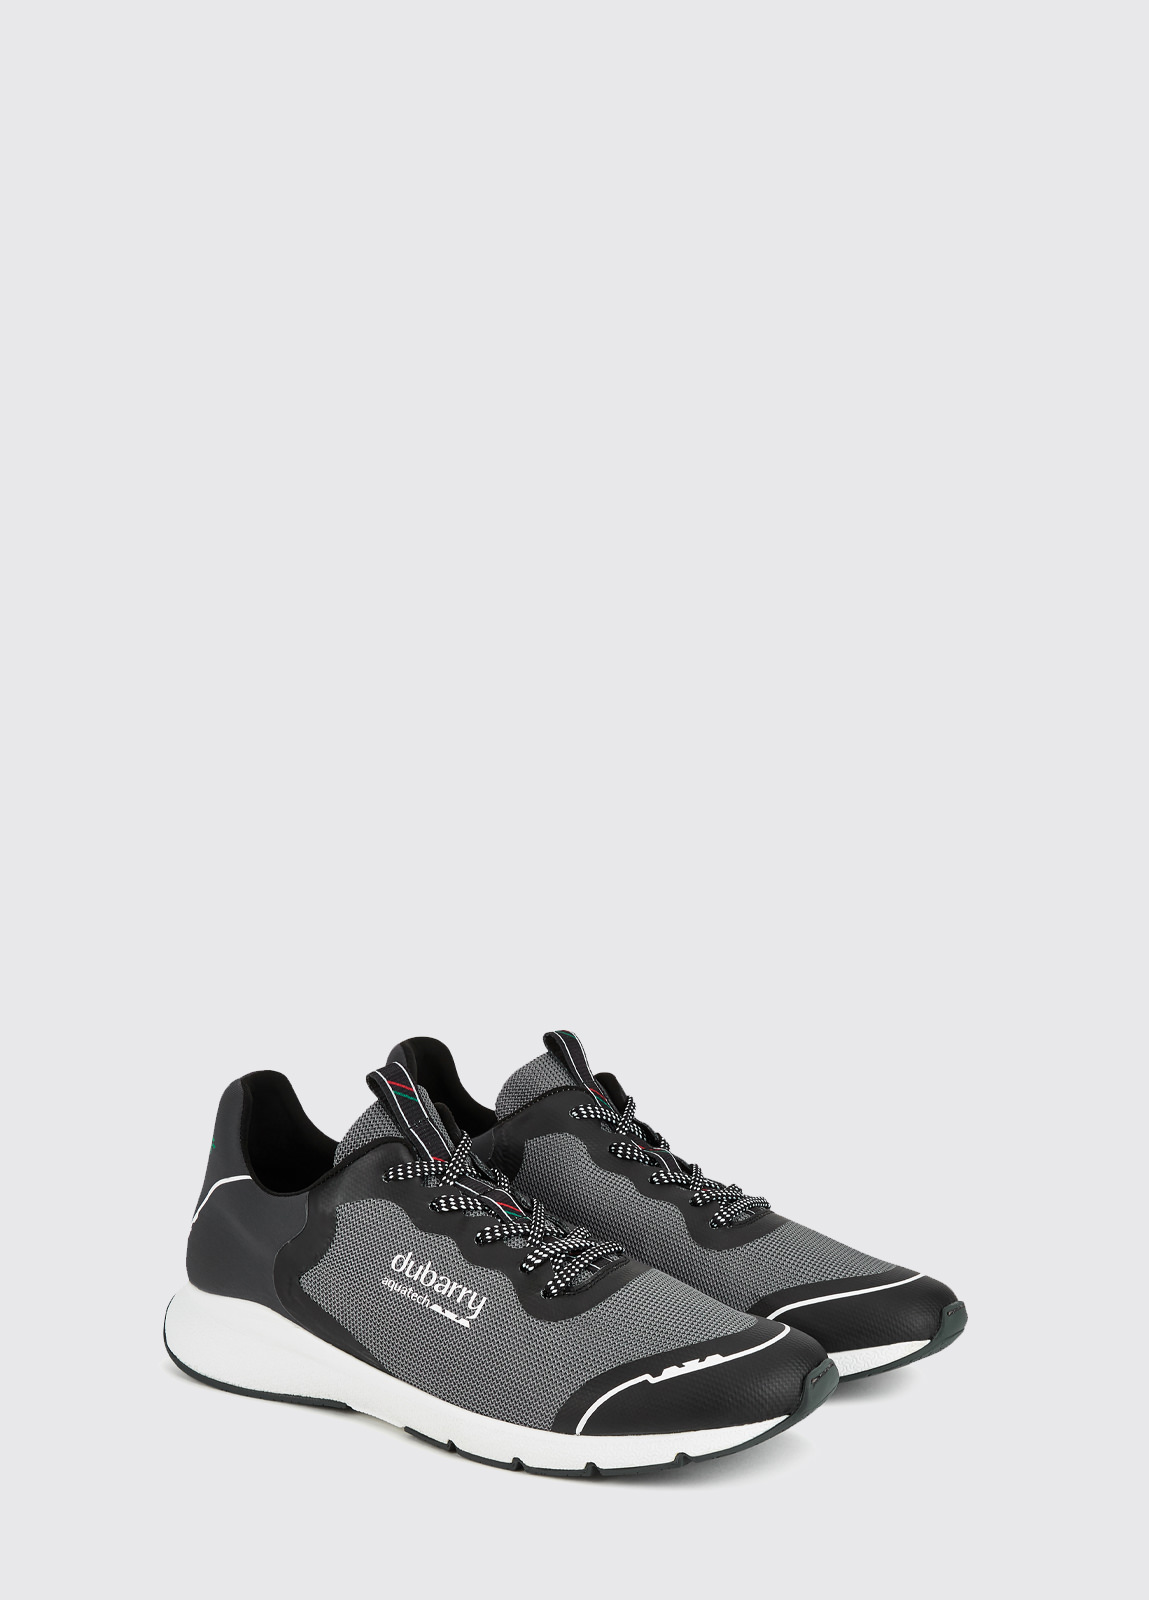 Palma Lightweight Laced Trainer - Graphite